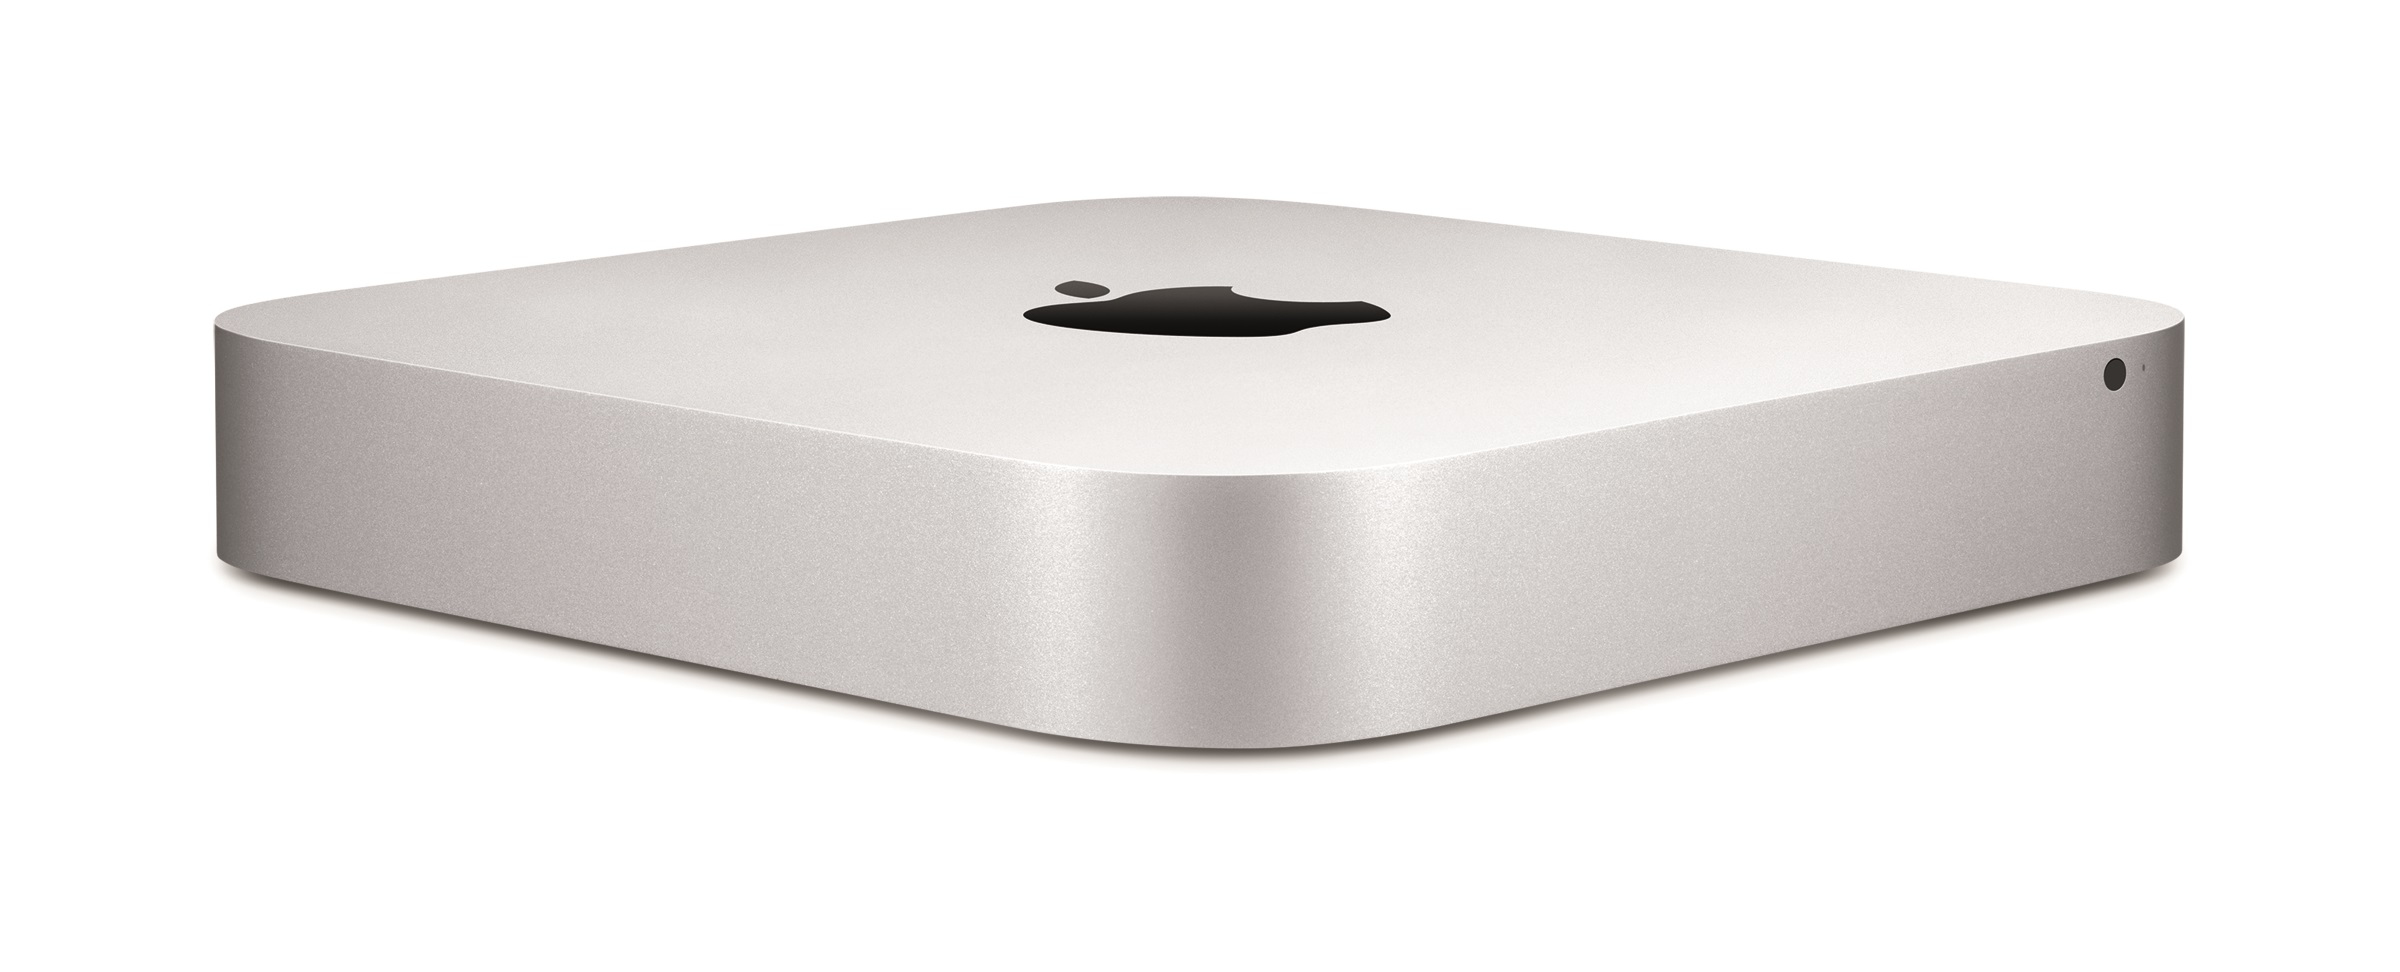 Apple Mac mini 3.0GHz 1.4GHz Nettop Silver